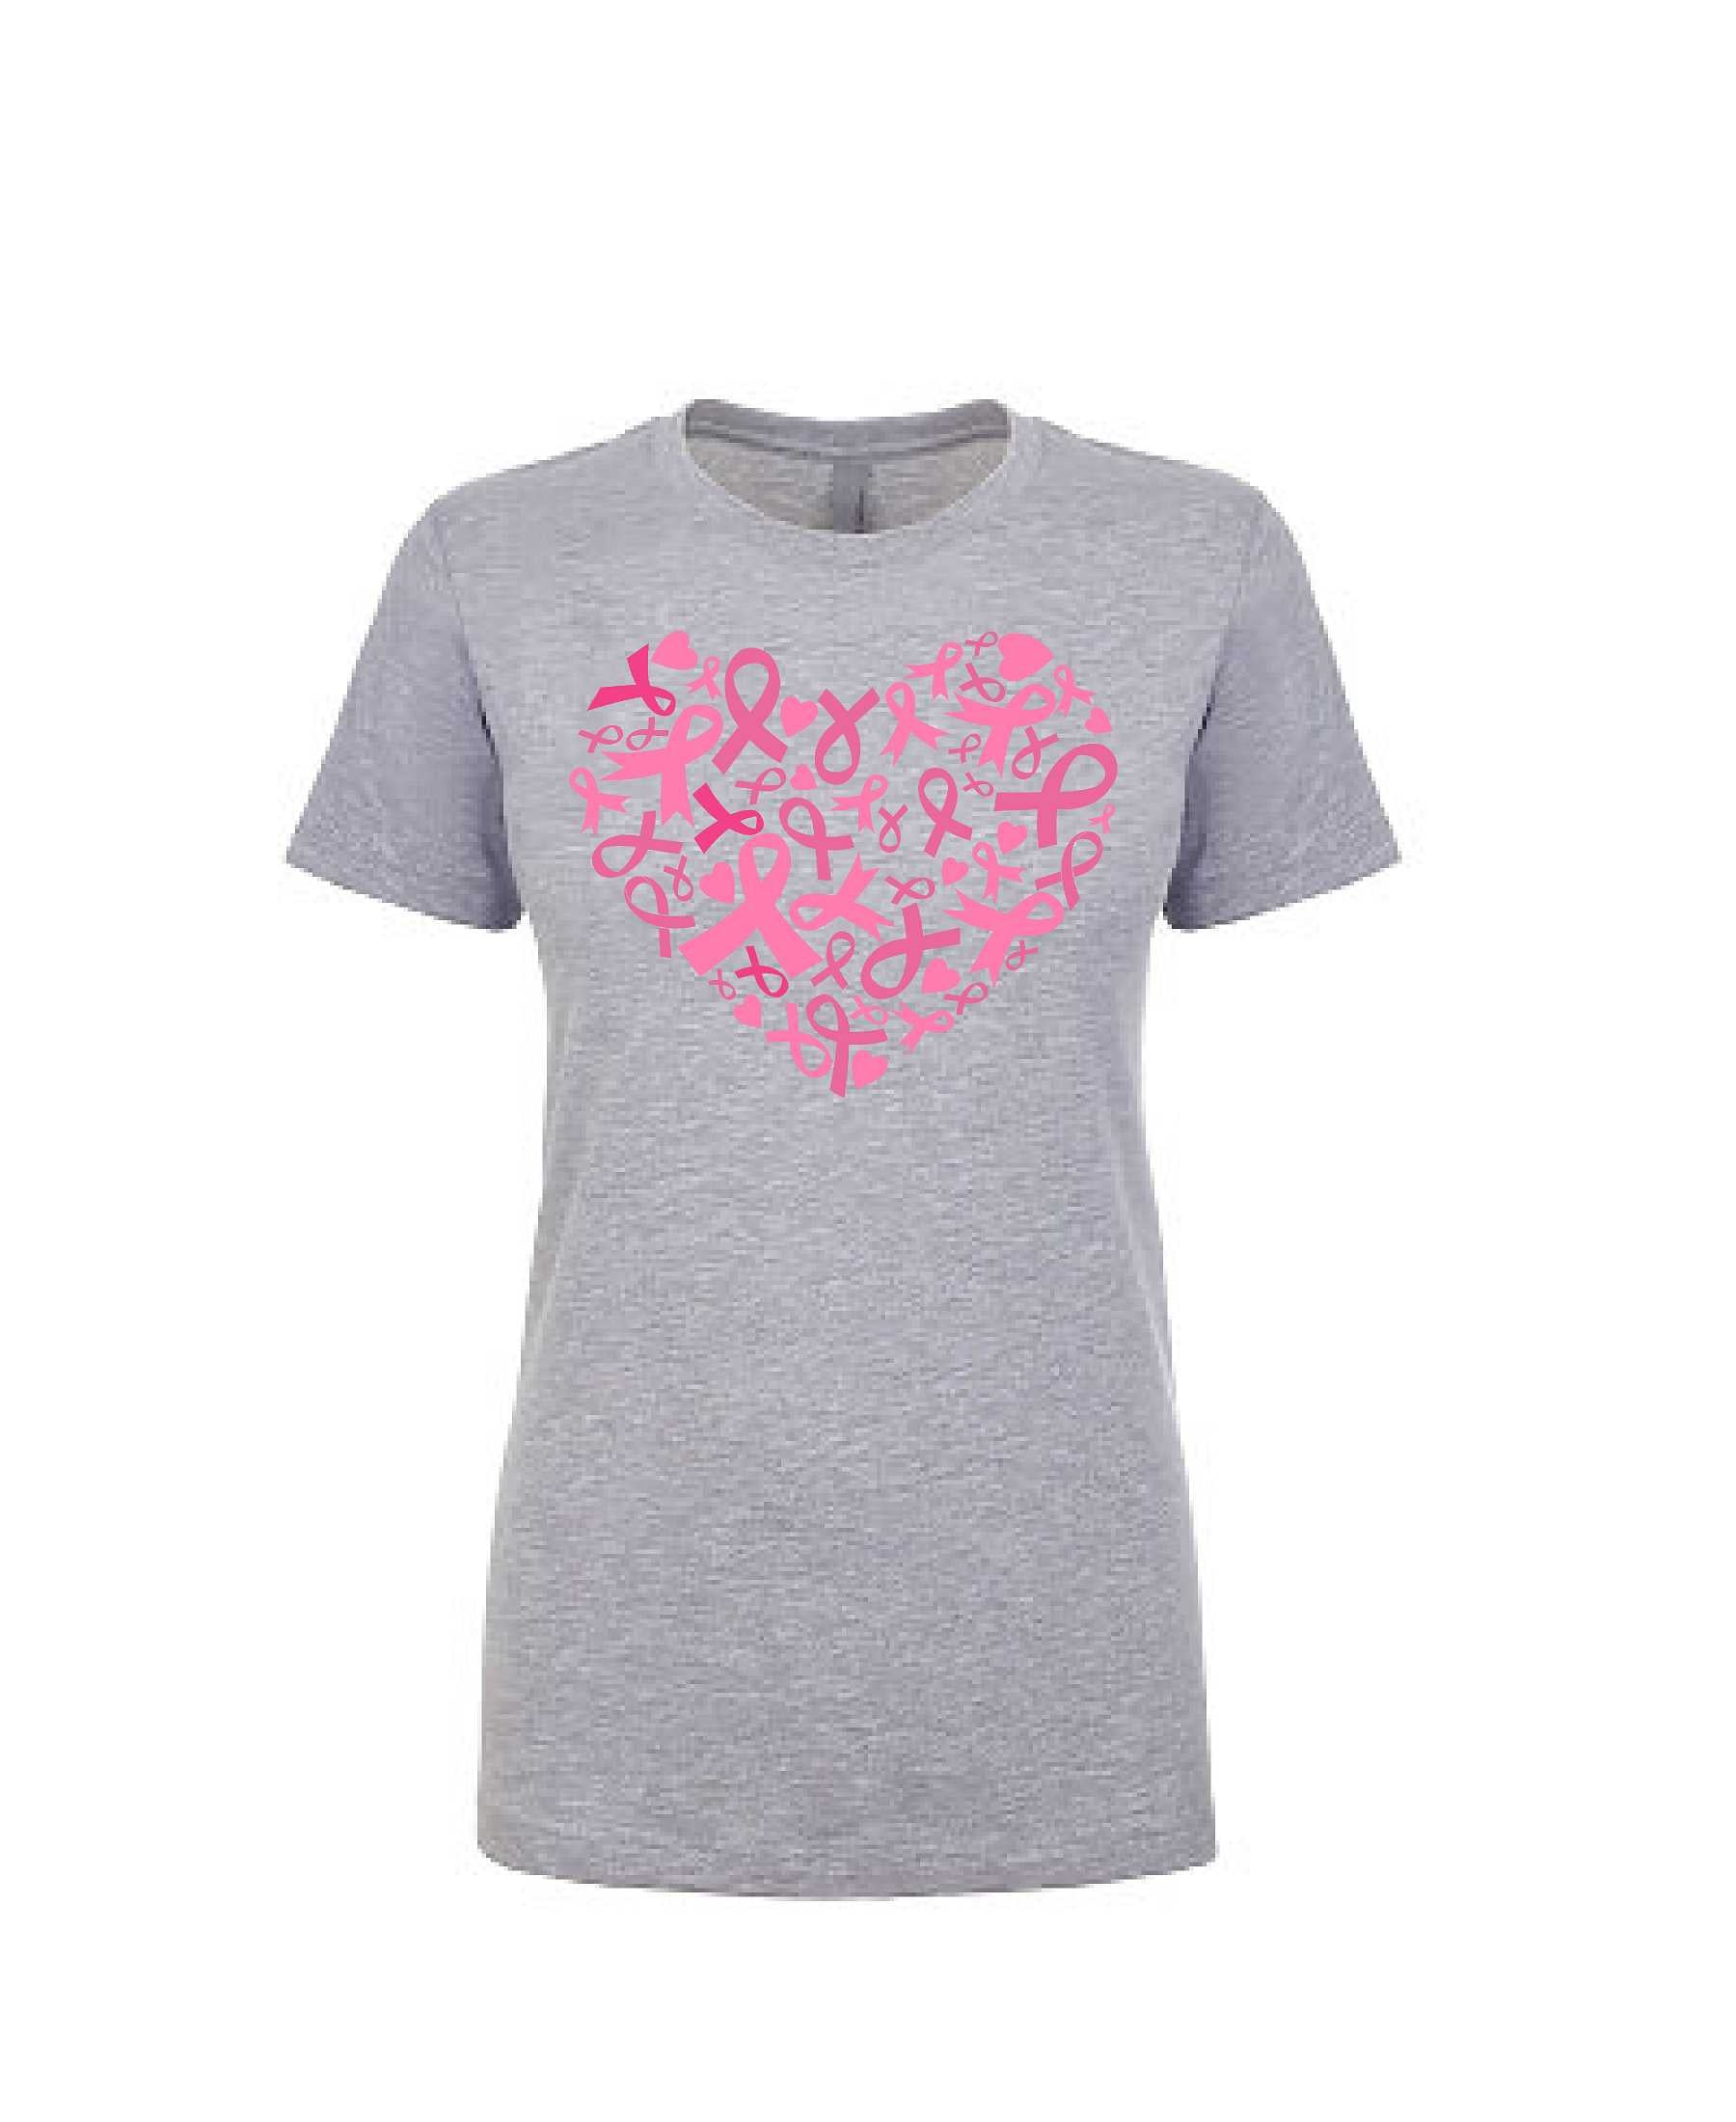 Heart of Ribbons - Women's Boyfriend Tee